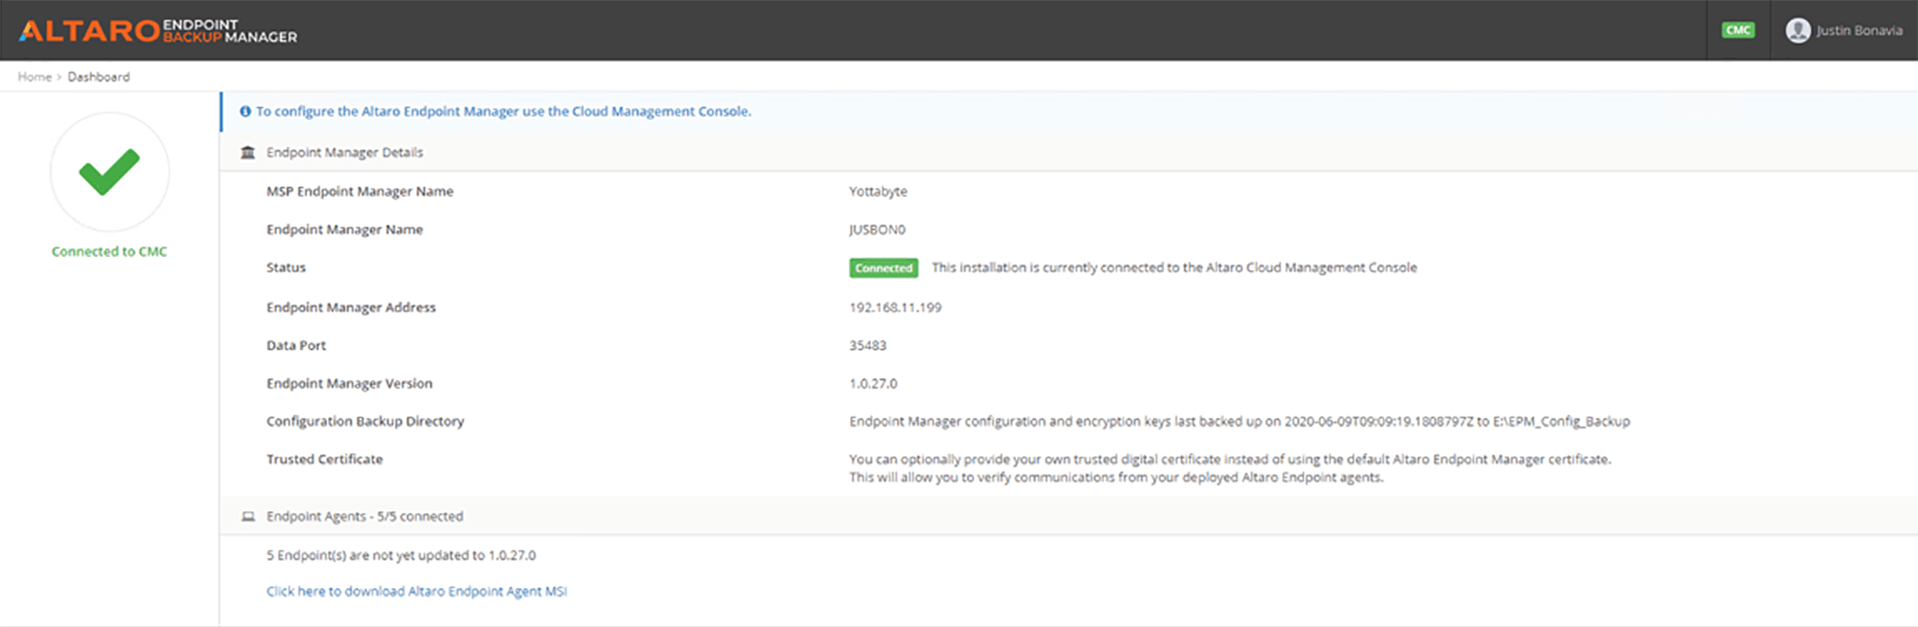 Altaro Endpoint Backup Manager